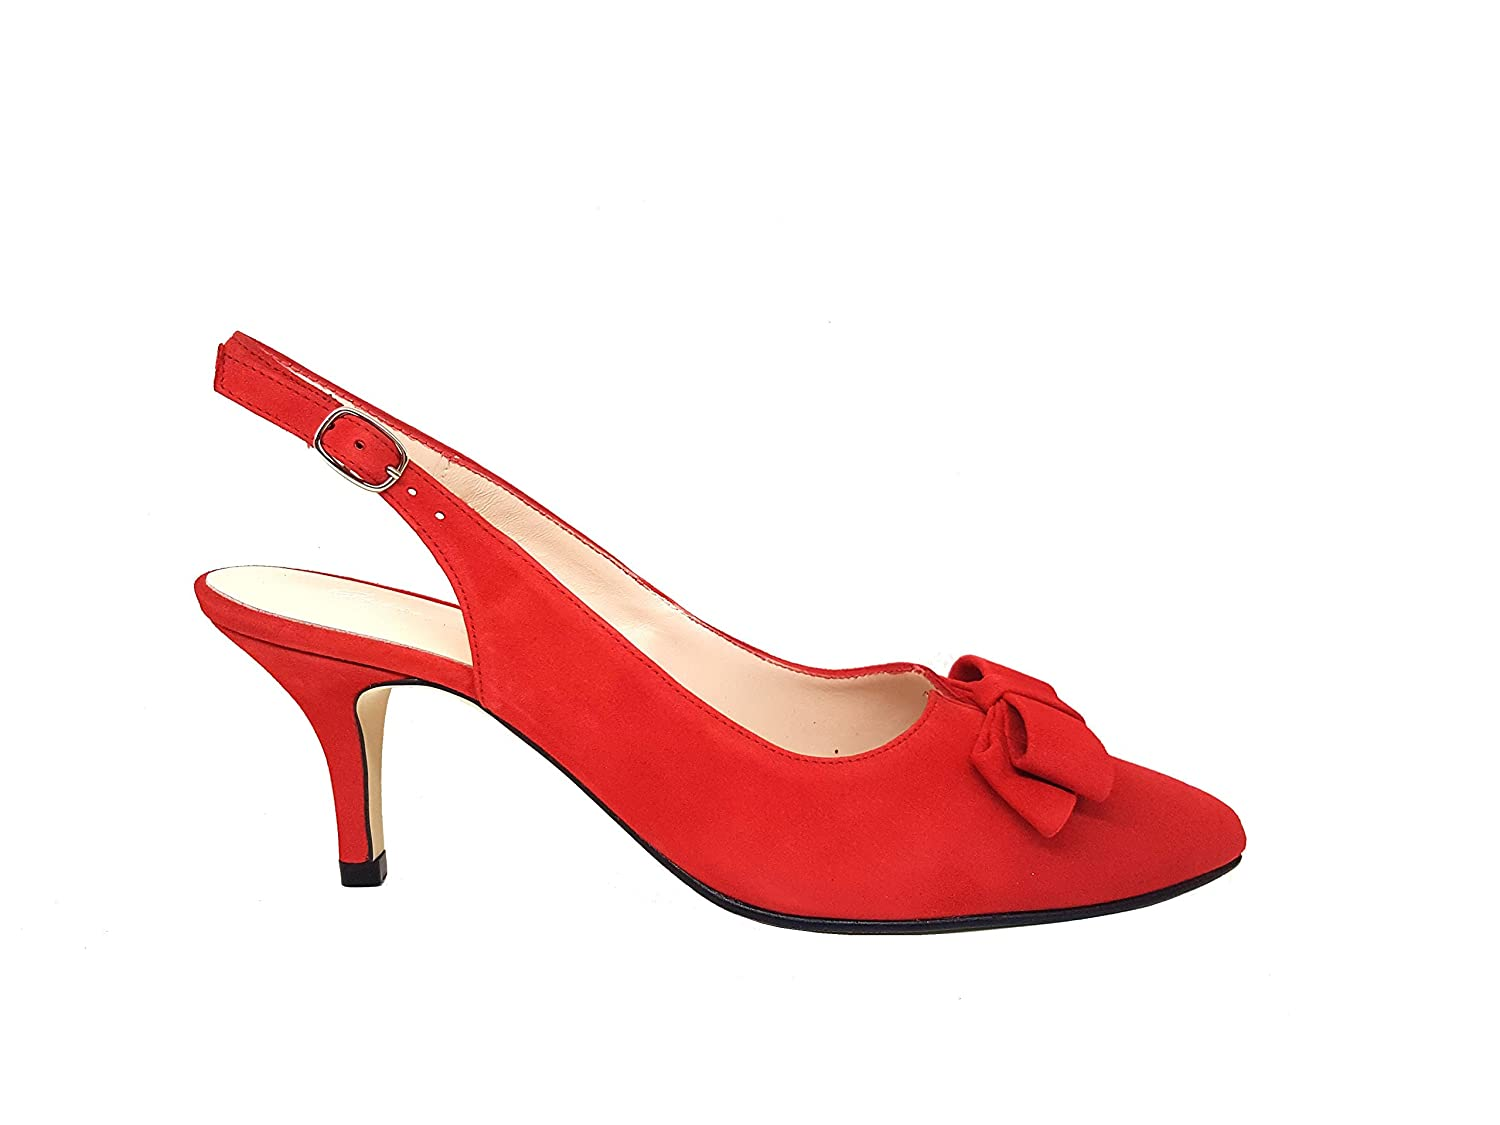 GENNIA ISARALING Women Slingback Closed Toe Leather Pumps with Bow and Kitten Heel 6 cm